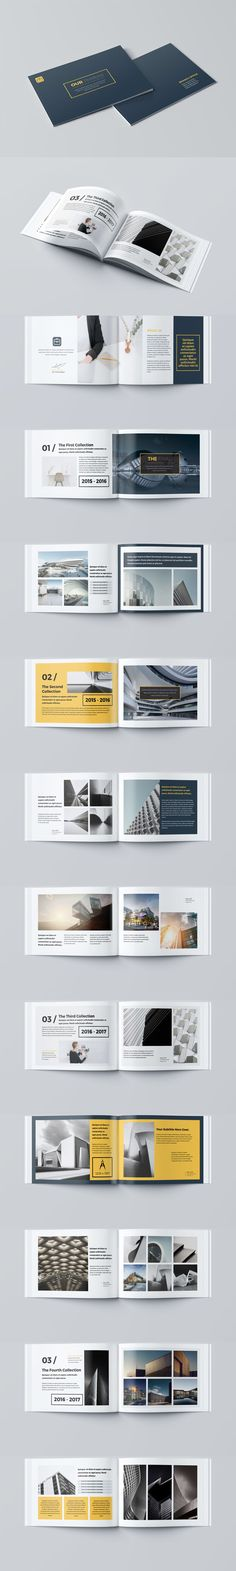 Our Portfolio Architecture 24 Pages A4 & A5 Template InDesign INDD